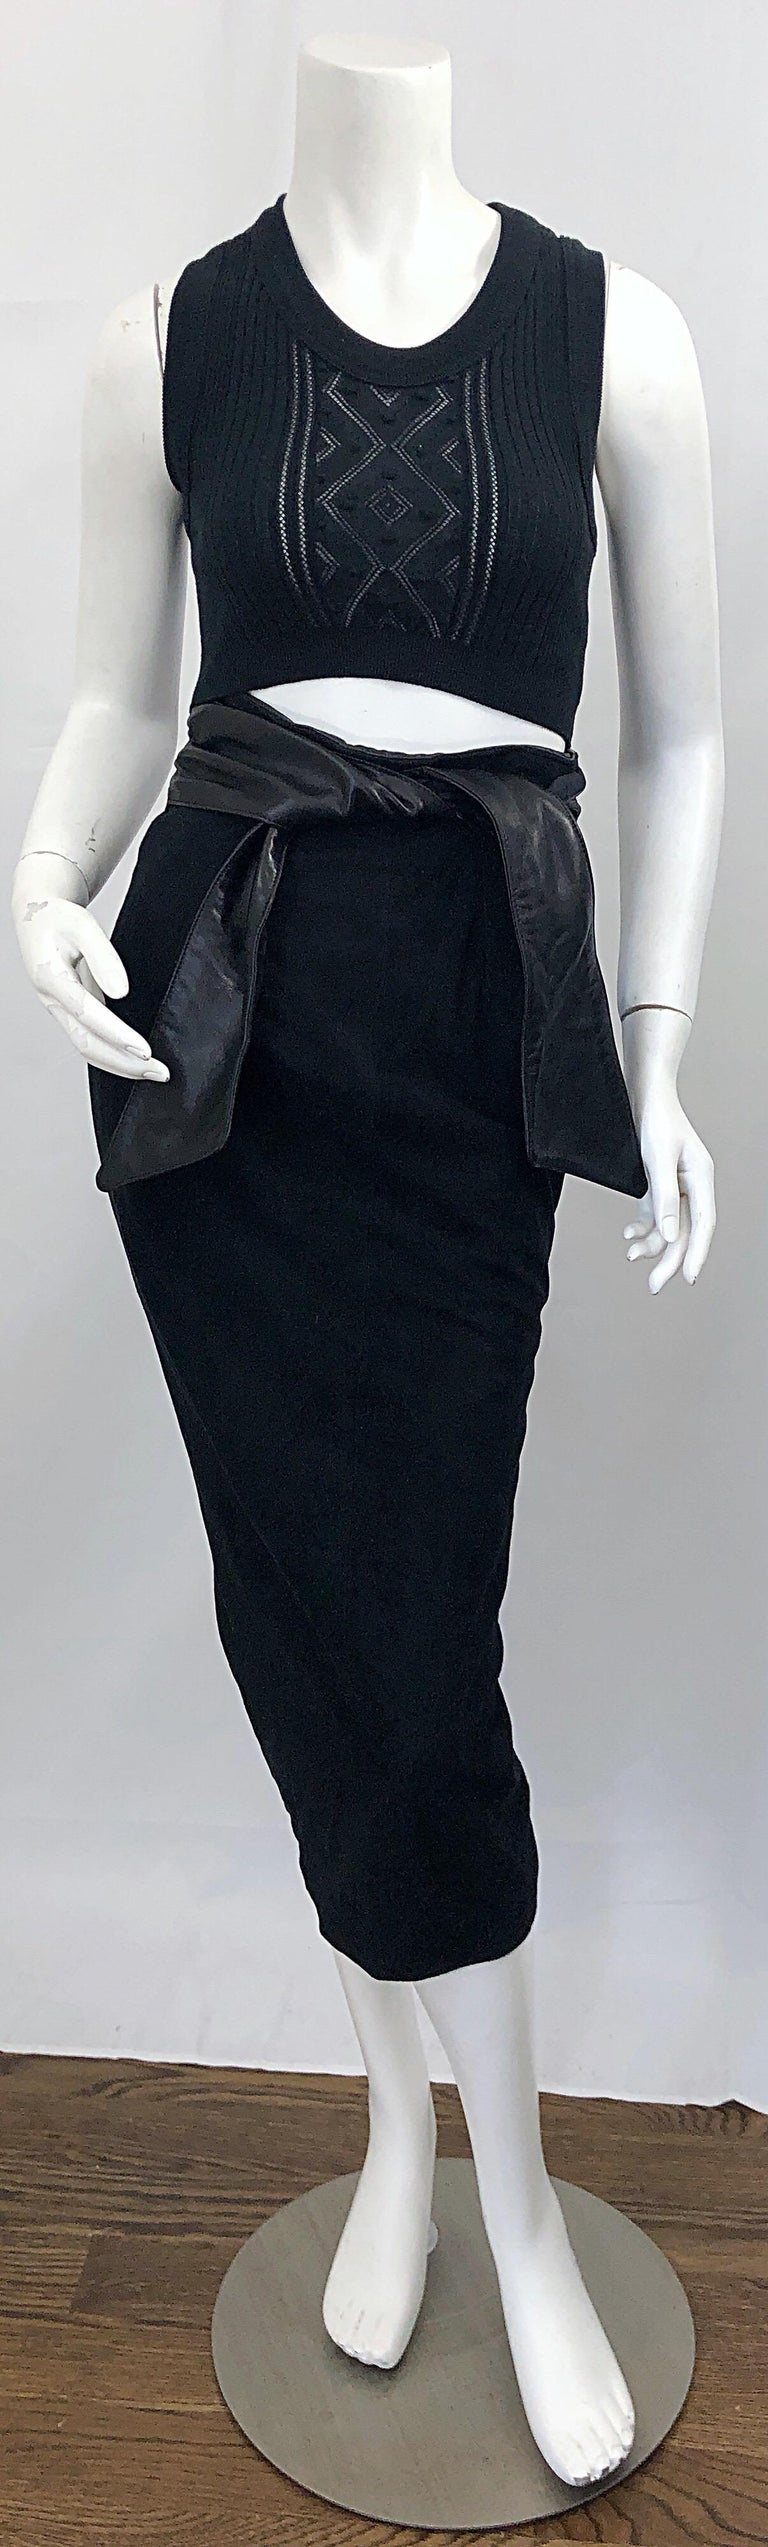 c8bc96466 Chic 1990s VAKKO Size 4 black suede and leather high waisted belted pencil  midi skirt!